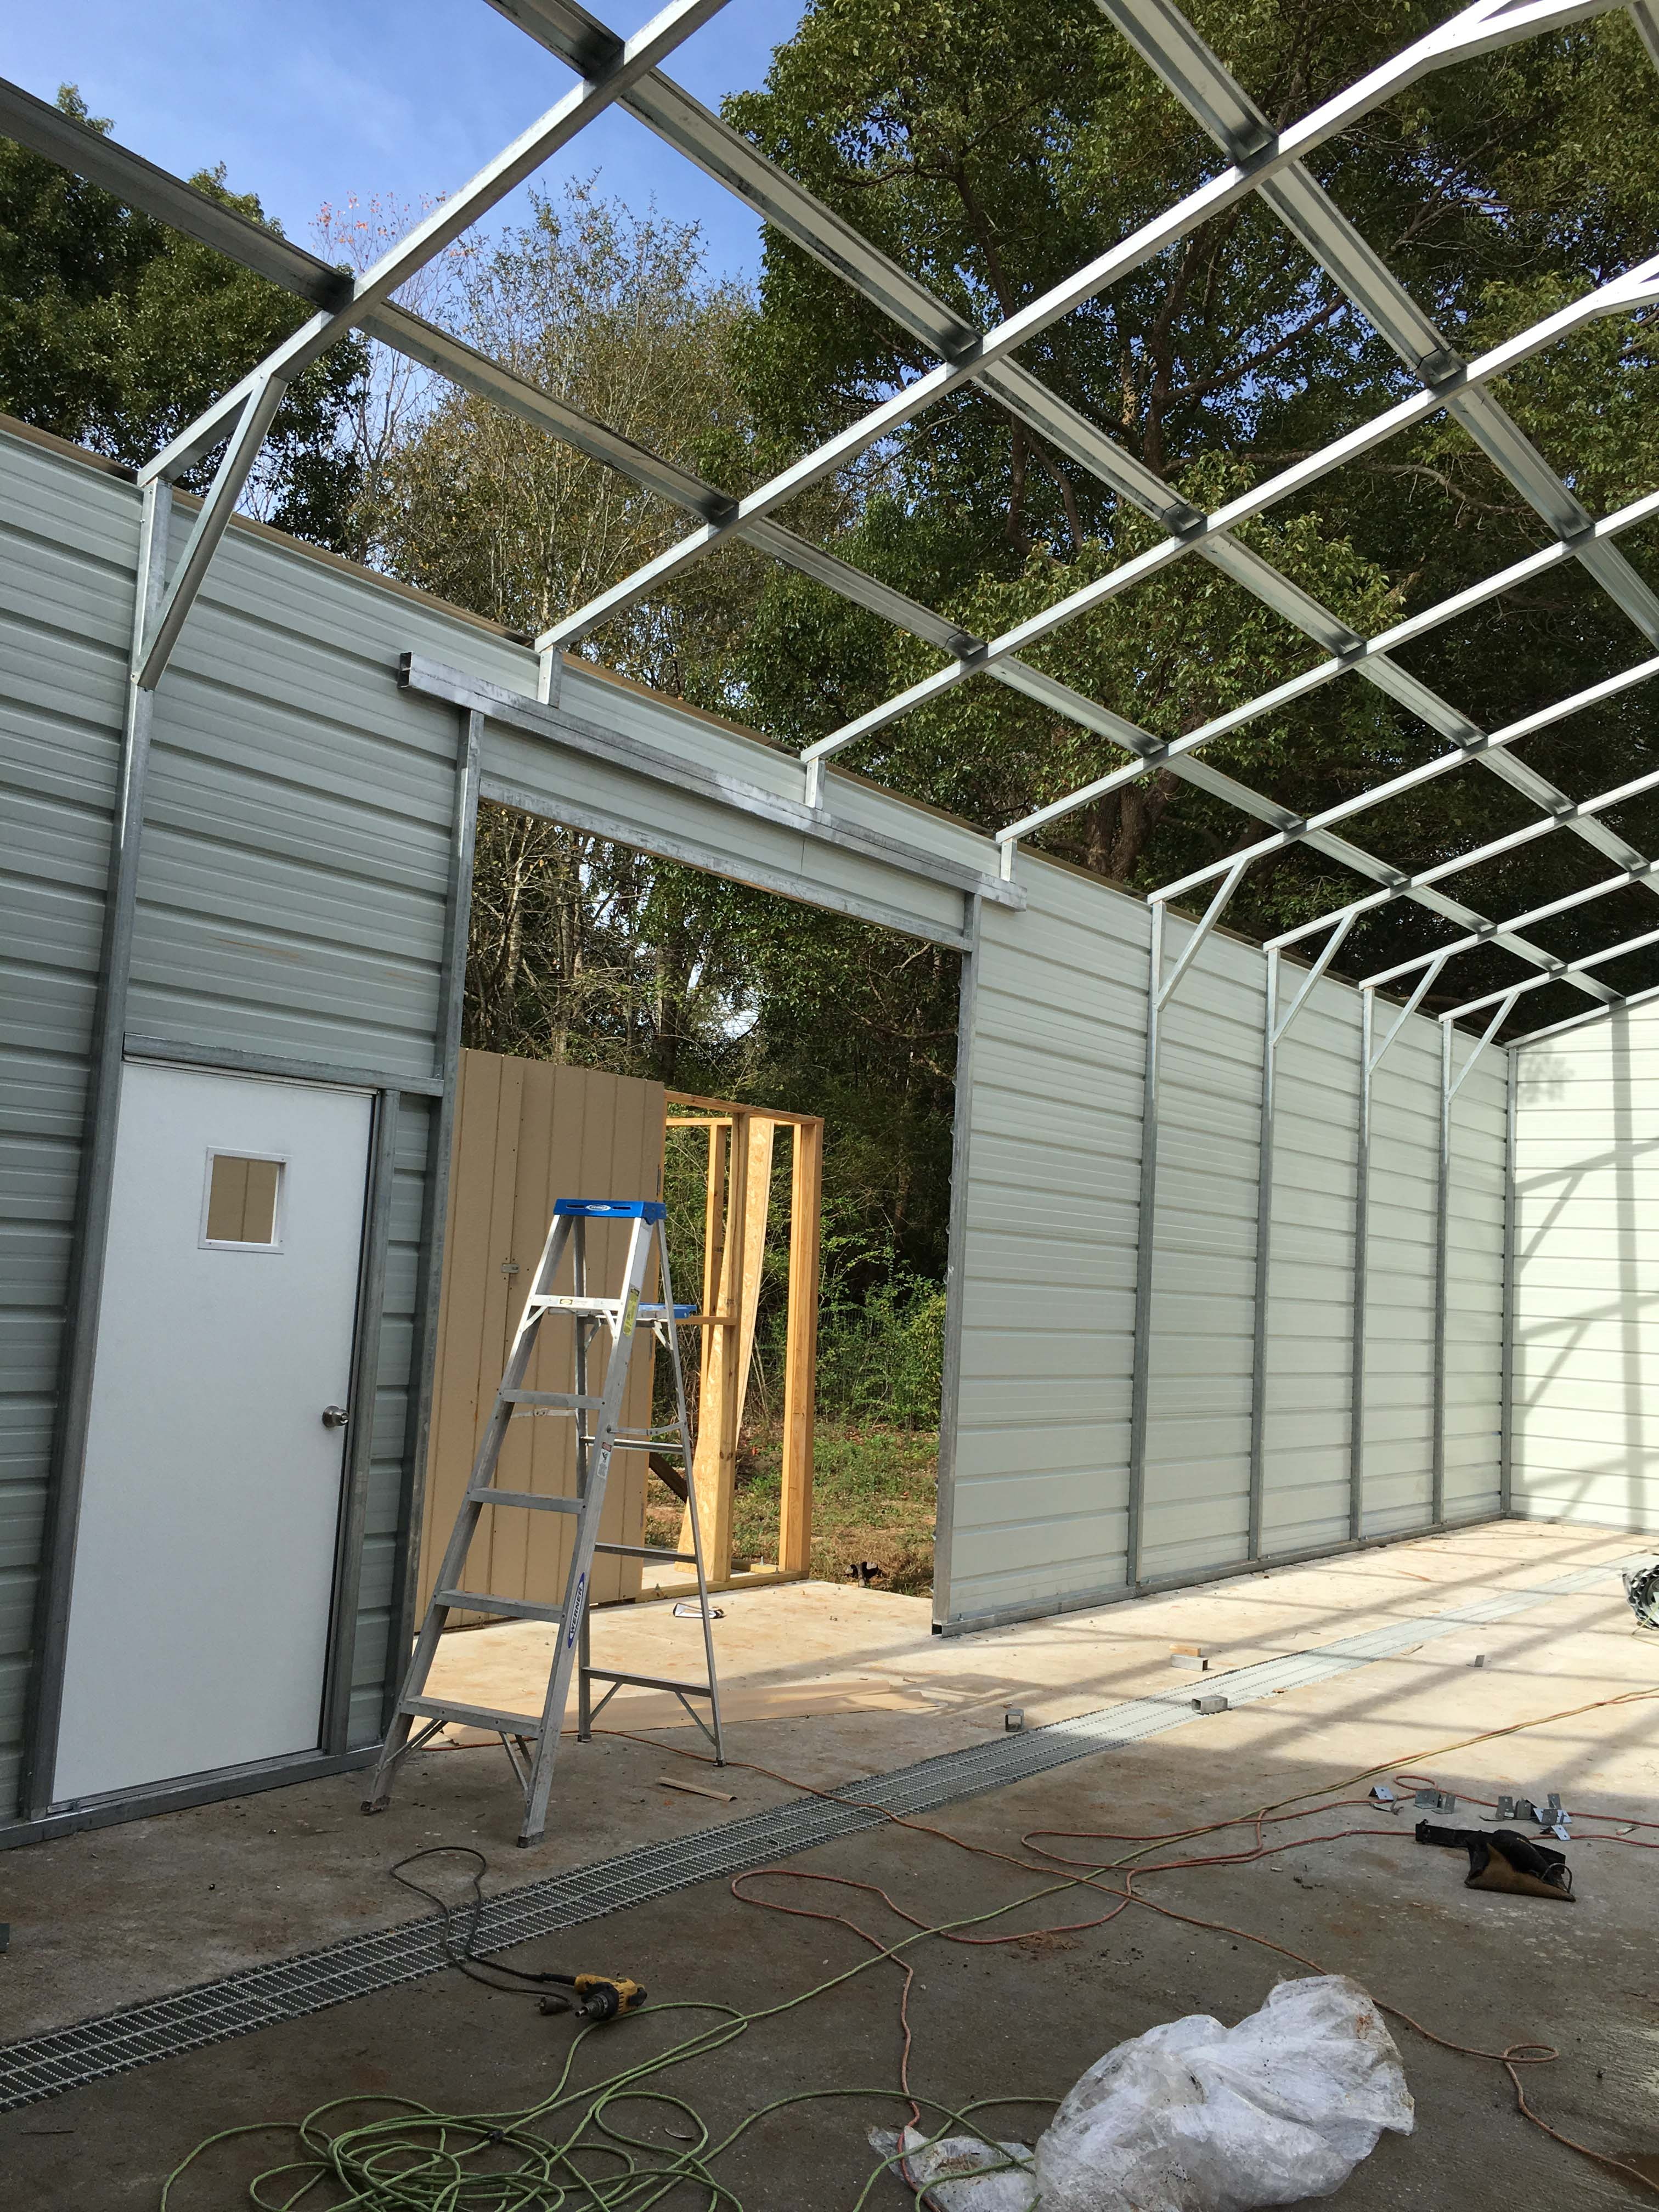 look inside a steel garage job gatorback carports here s the side wall of this job before we installed the roof and roll up door we ve still got work to do but the side wall is getting finished and the